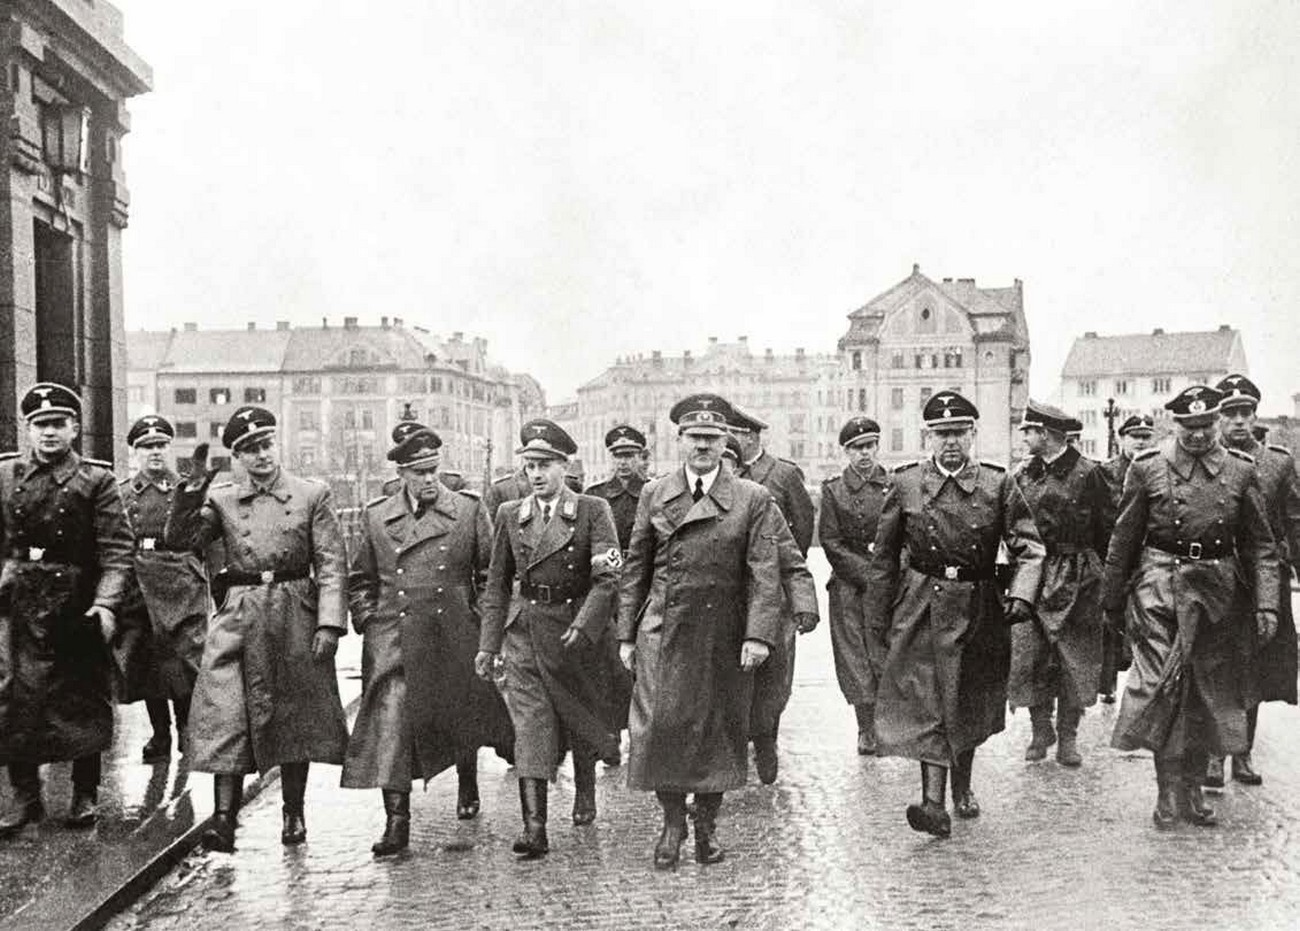 """Adolf Hitler inspecting the demolished bridge over the Drava River in Maribor, 26 April 1941. MNZS. It is incorrectly mentioned in literature that Hitler uttered the famous sentence """"Make this country German again!"""" in his speech given on the balcony of the town hall in Maribor on 26 April 1941. In reality – according to the speech given by the Chief of the Civil Administration of Styria dr. Uiberreither on 28 April 1941, likewise on the balcony of the town hall in Maribor – he had given that order earlier. In his speech Uiberreither said that Hitler had addressed him with those words when handing over the administration three weeks earlier. Source: Repe, S puško in knjigo, 24."""